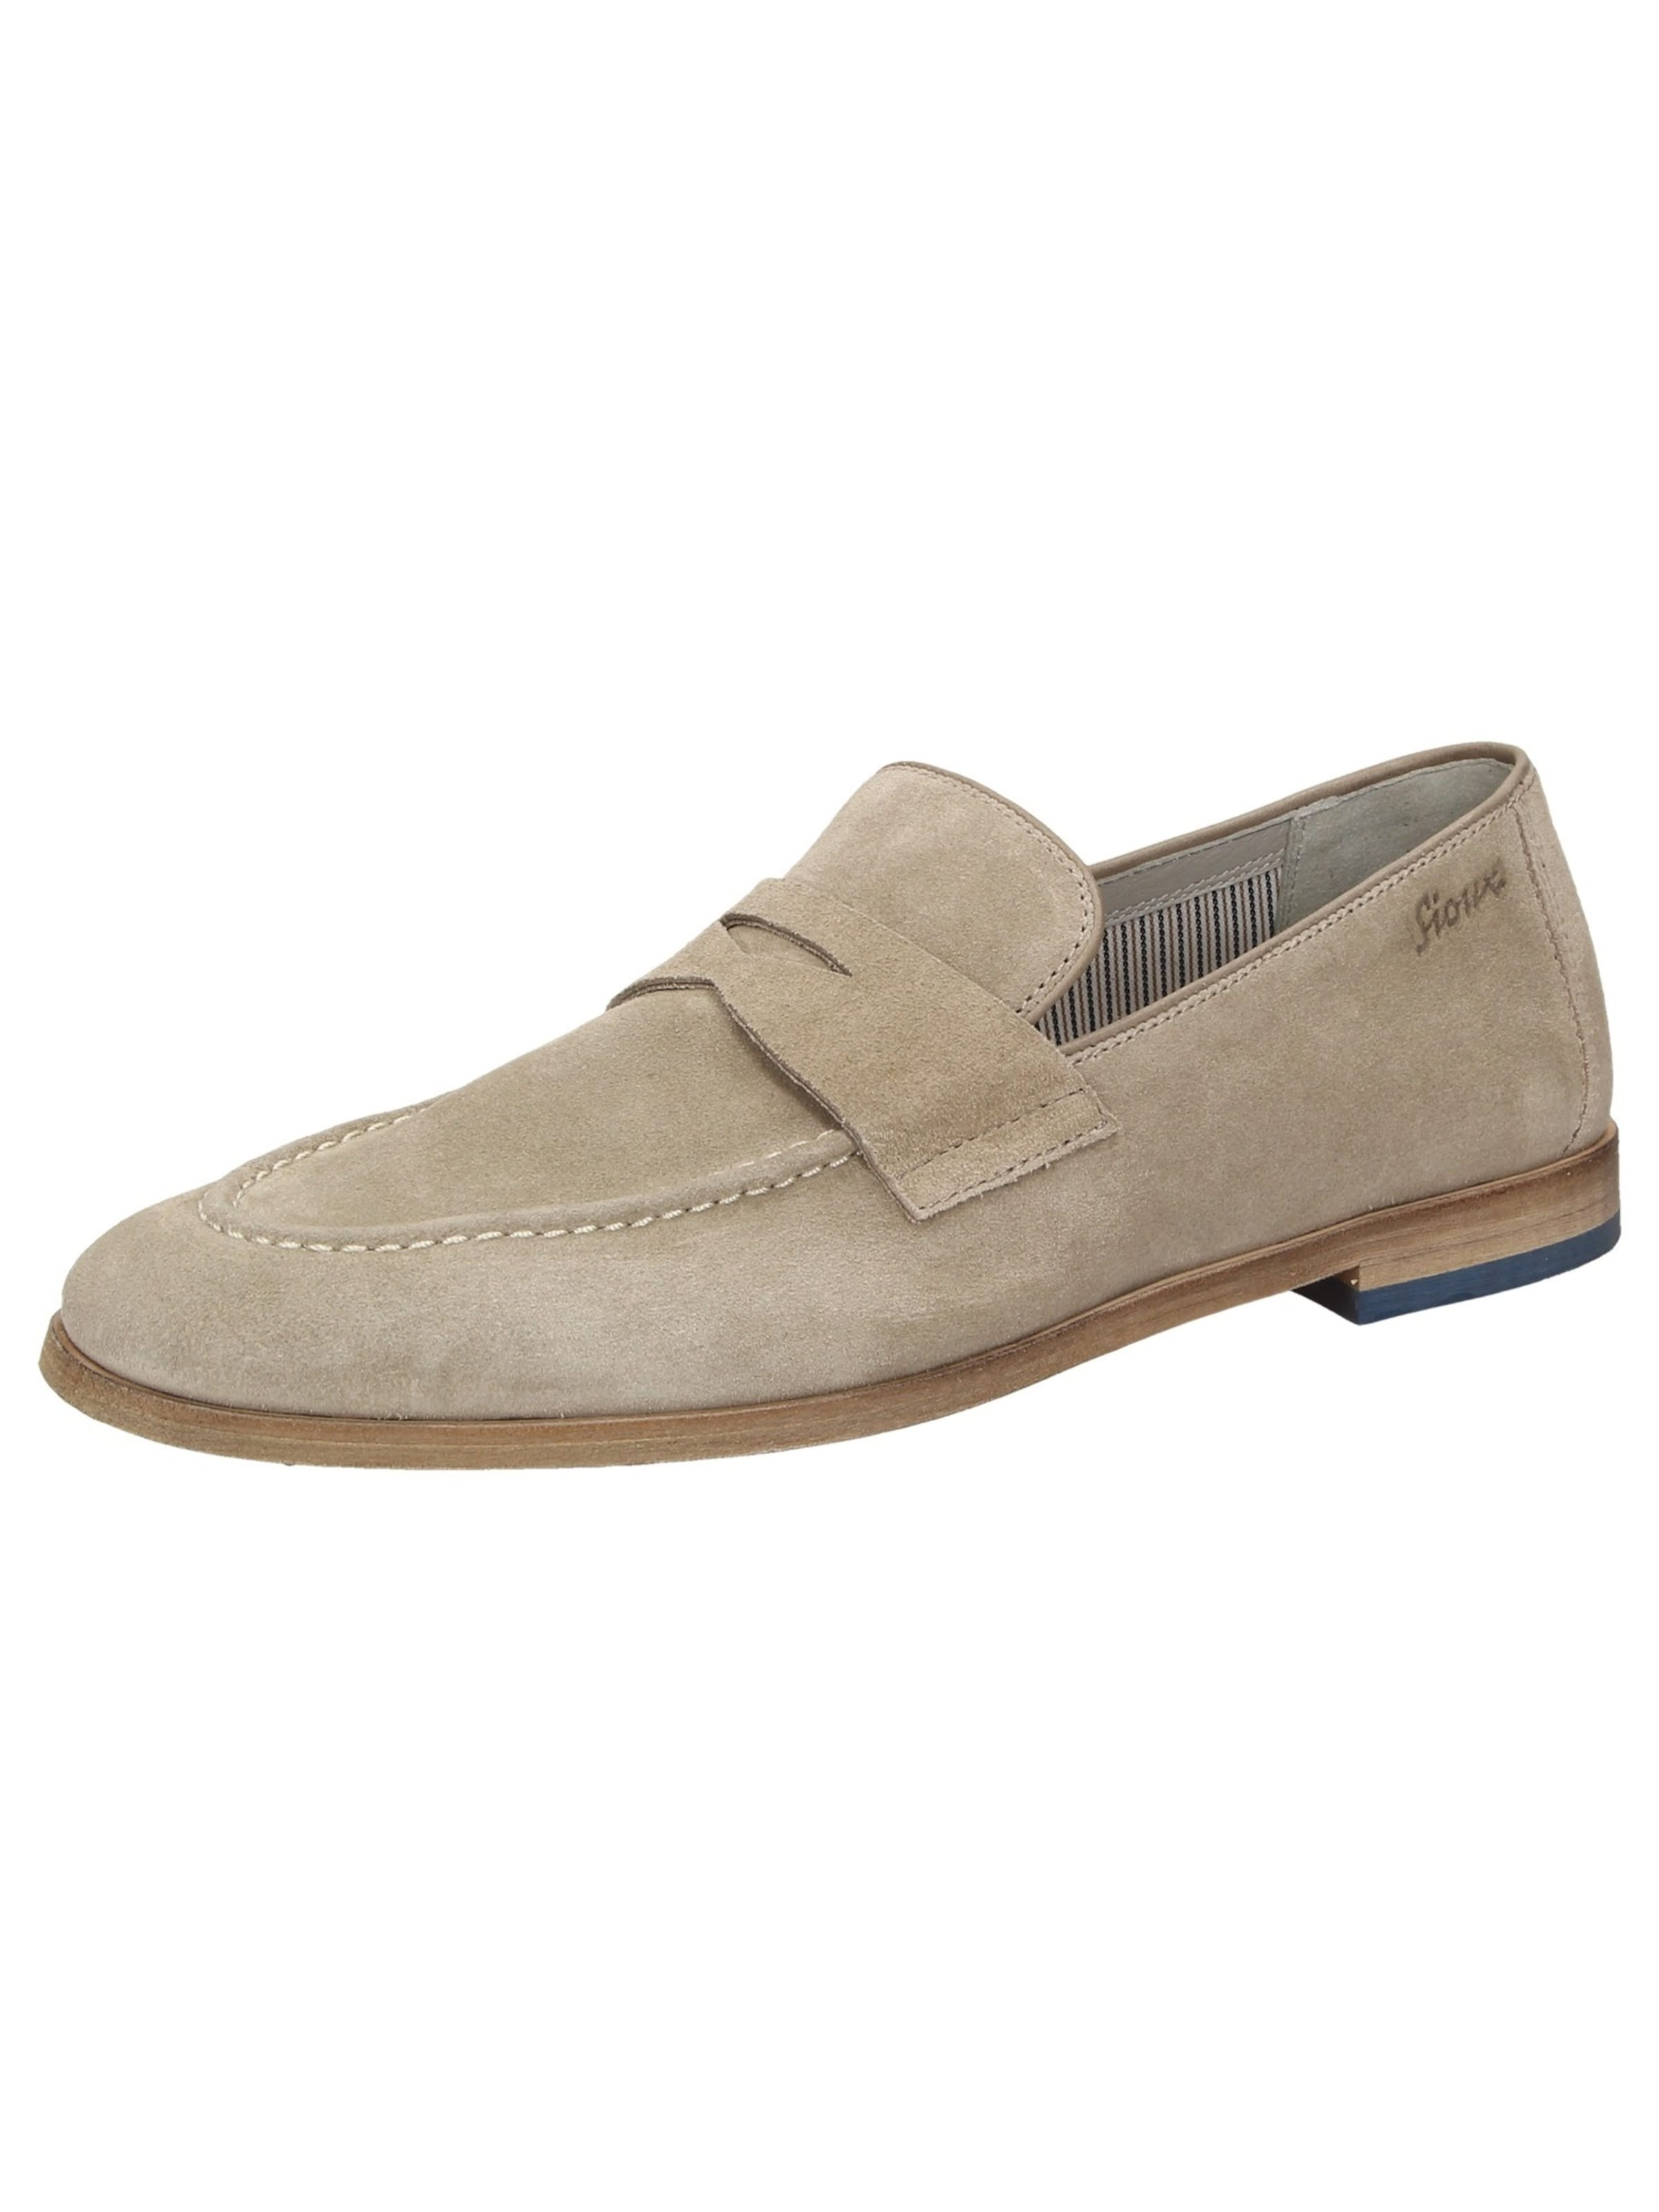 SIOUX Slipper   Banjano-700